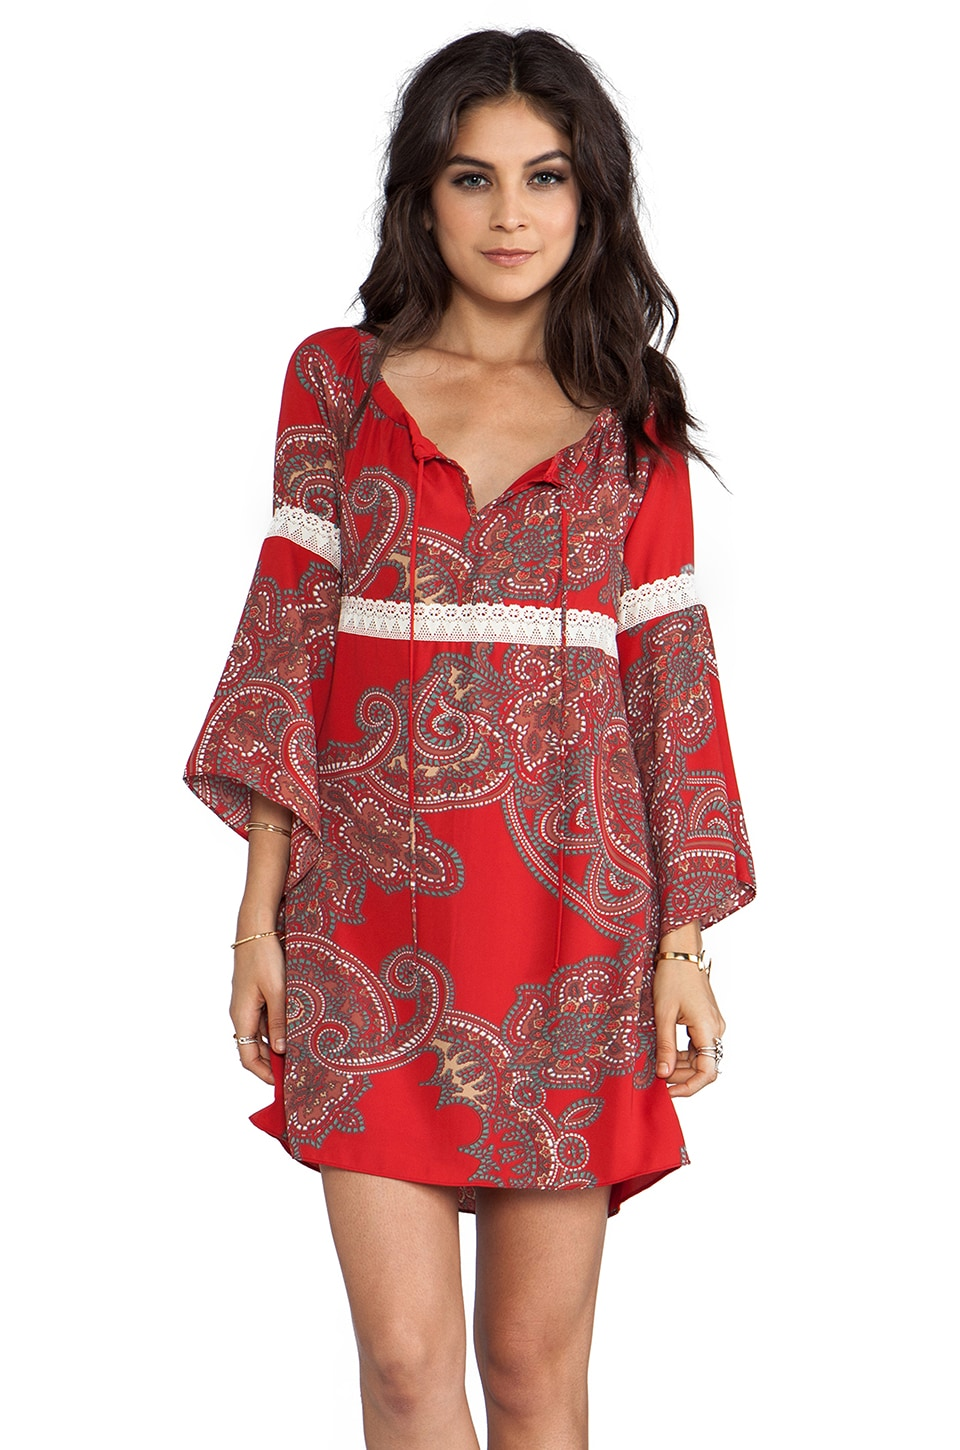 VOOM by Joy Han Tricia Dress in Red